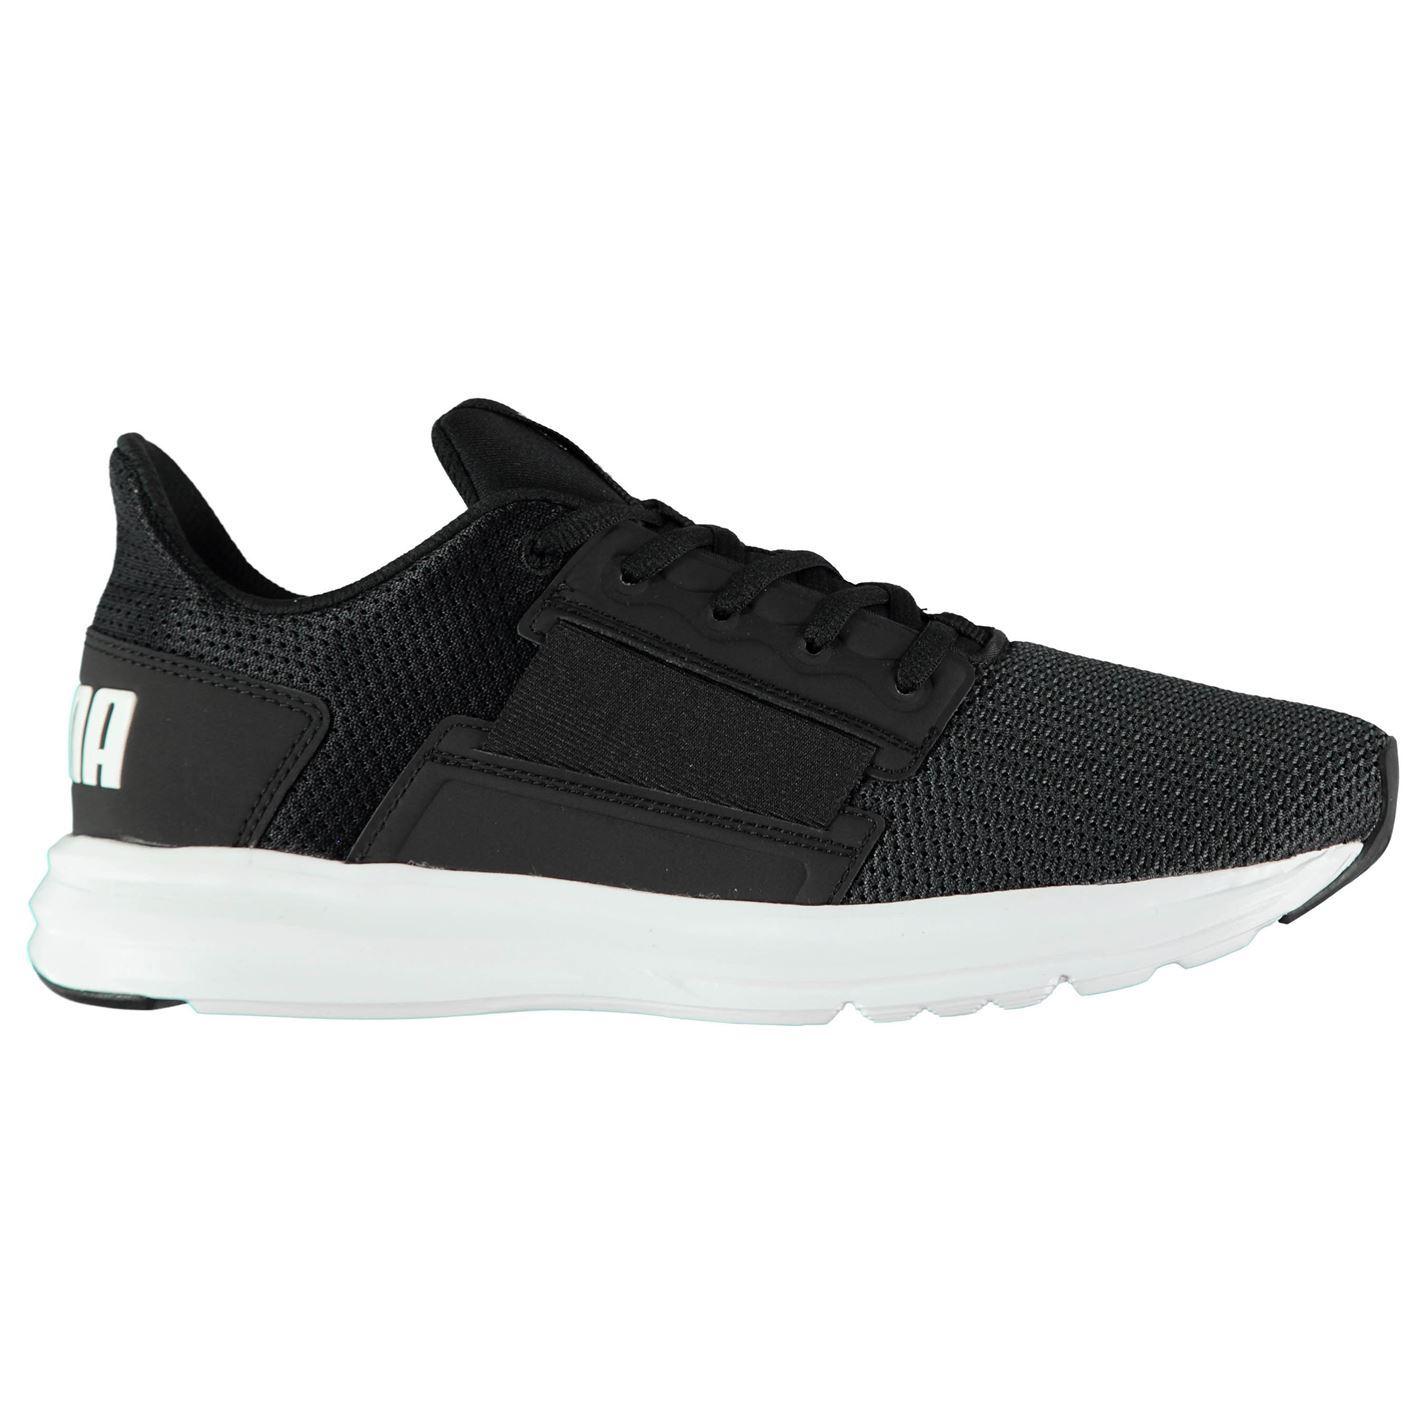 9d1d9dae876 Puma Enzo Street Trainers Mens Black White Athletic Sneakers Shoes ...